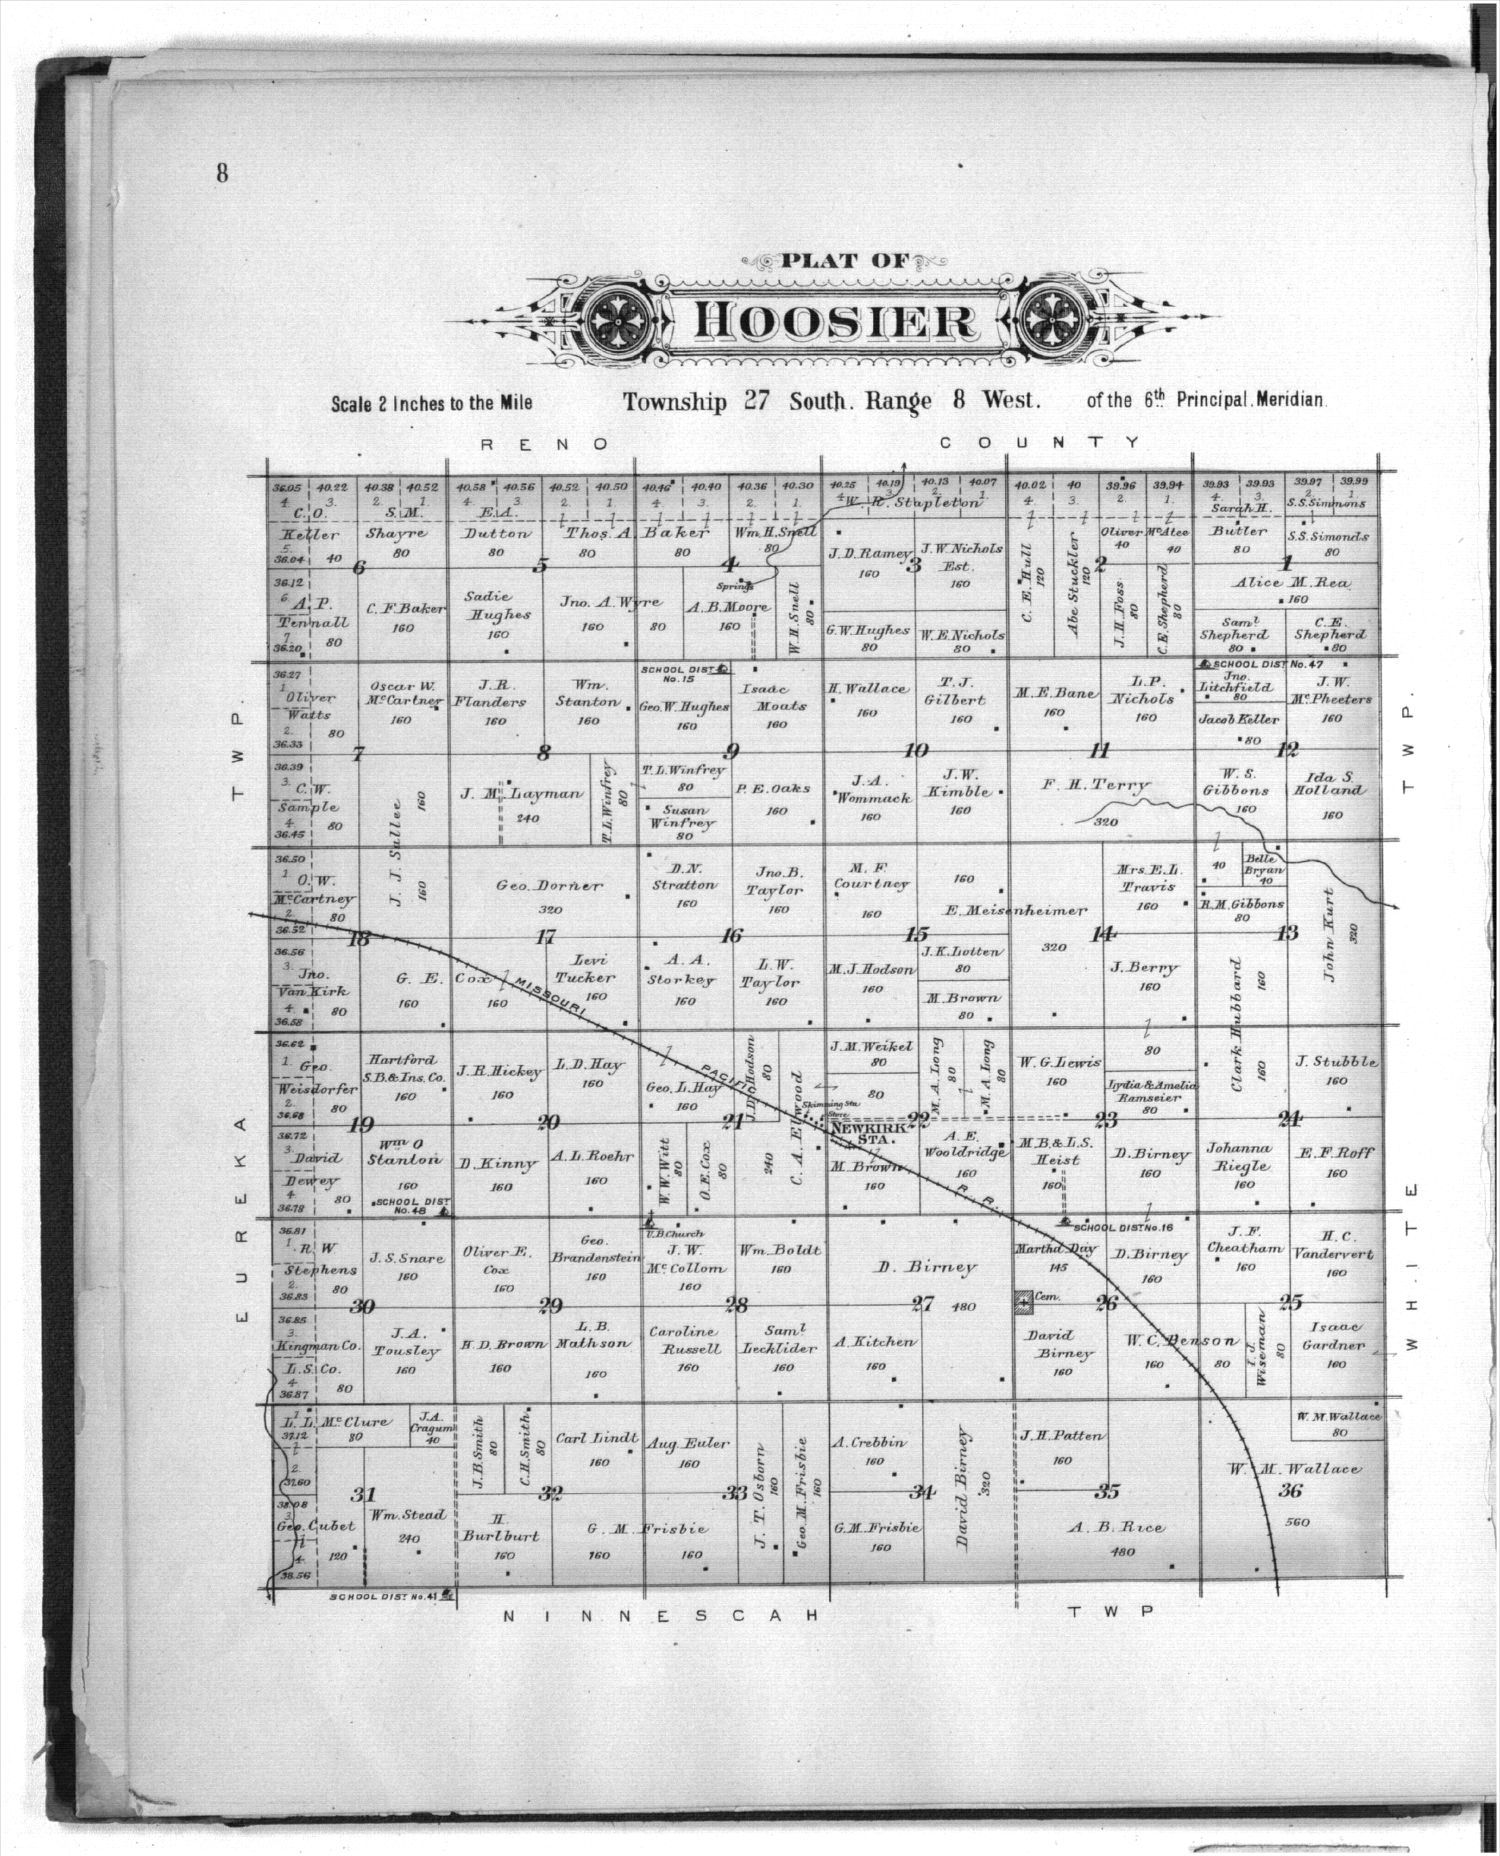 Plat book of Kingman County, Kansas - 8